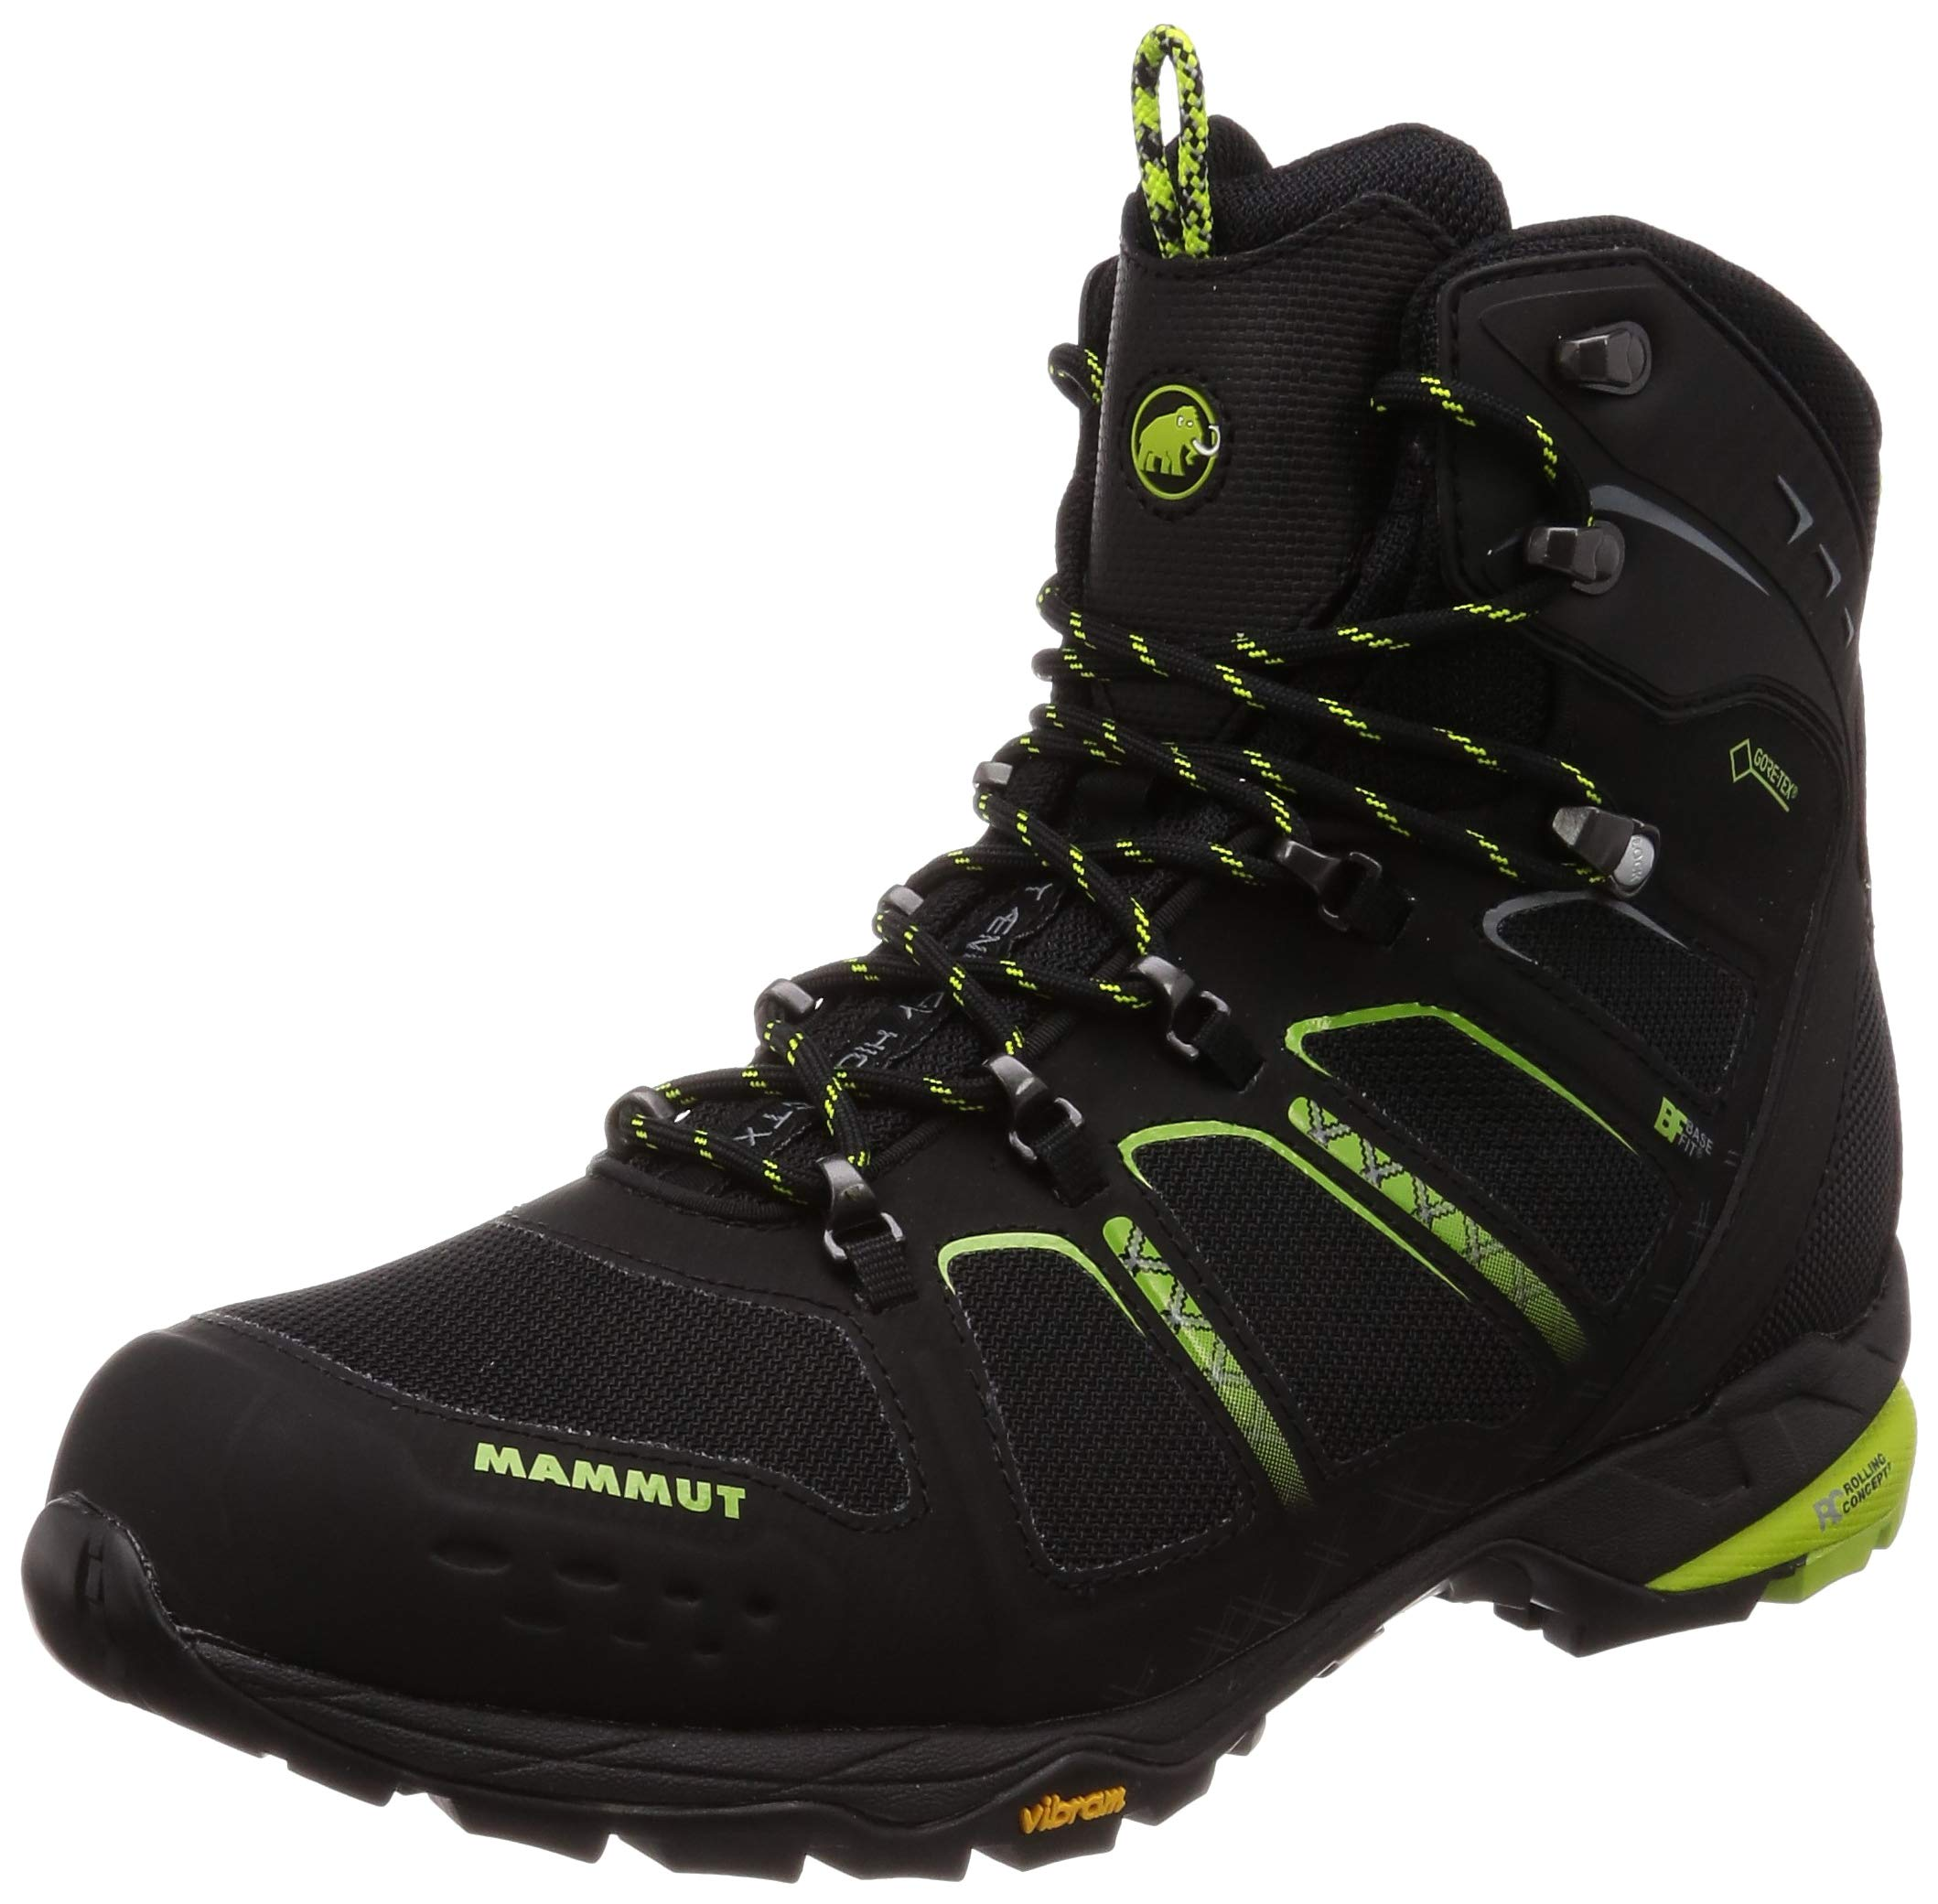 Mammut T Aenergy High GTX Boot - Men's Black/Sprout, 9.0